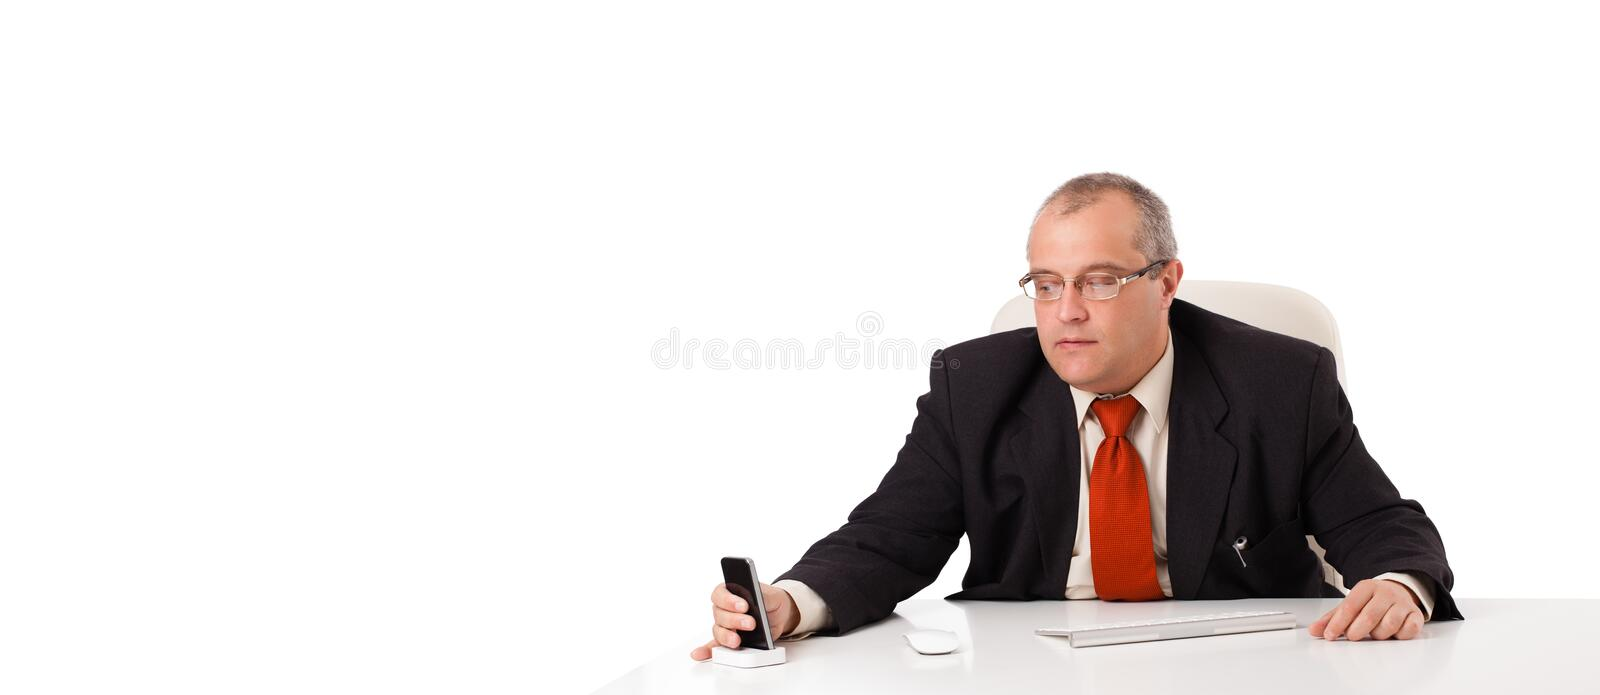 Businessman sitting at desk and holding a mobilephone with copys pace. Isolated on white royalty free stock photos